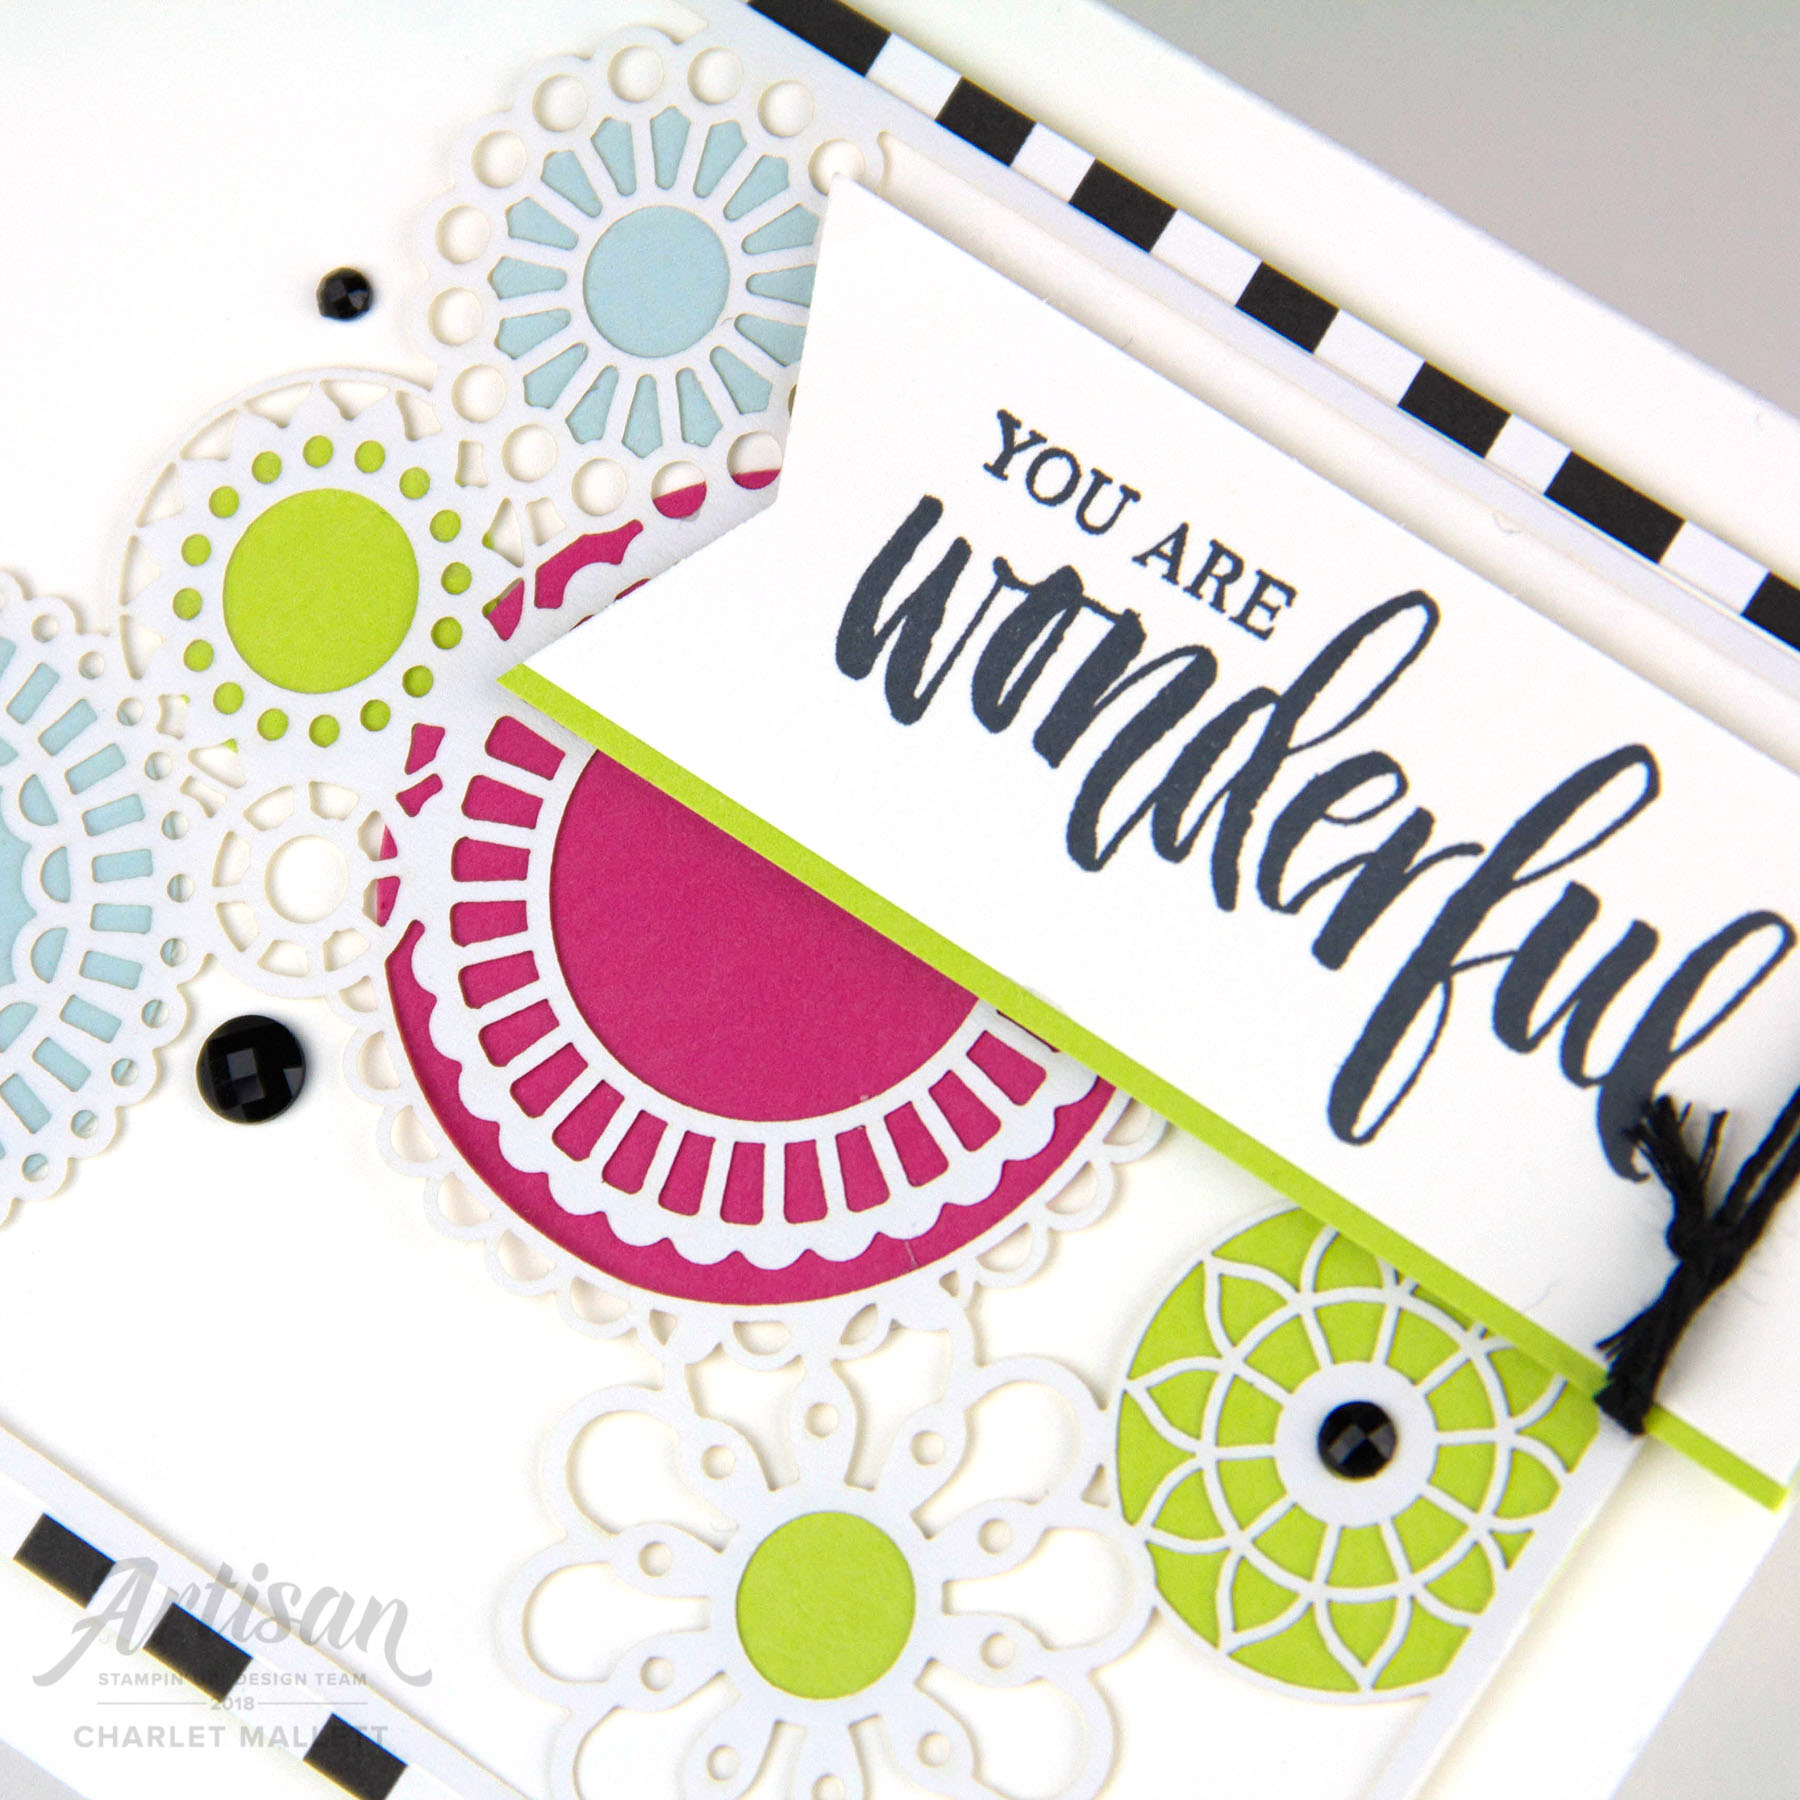 GDP138 - Charlet Mallett, Stampin' Up! Greeting is from Rooted in Nature.